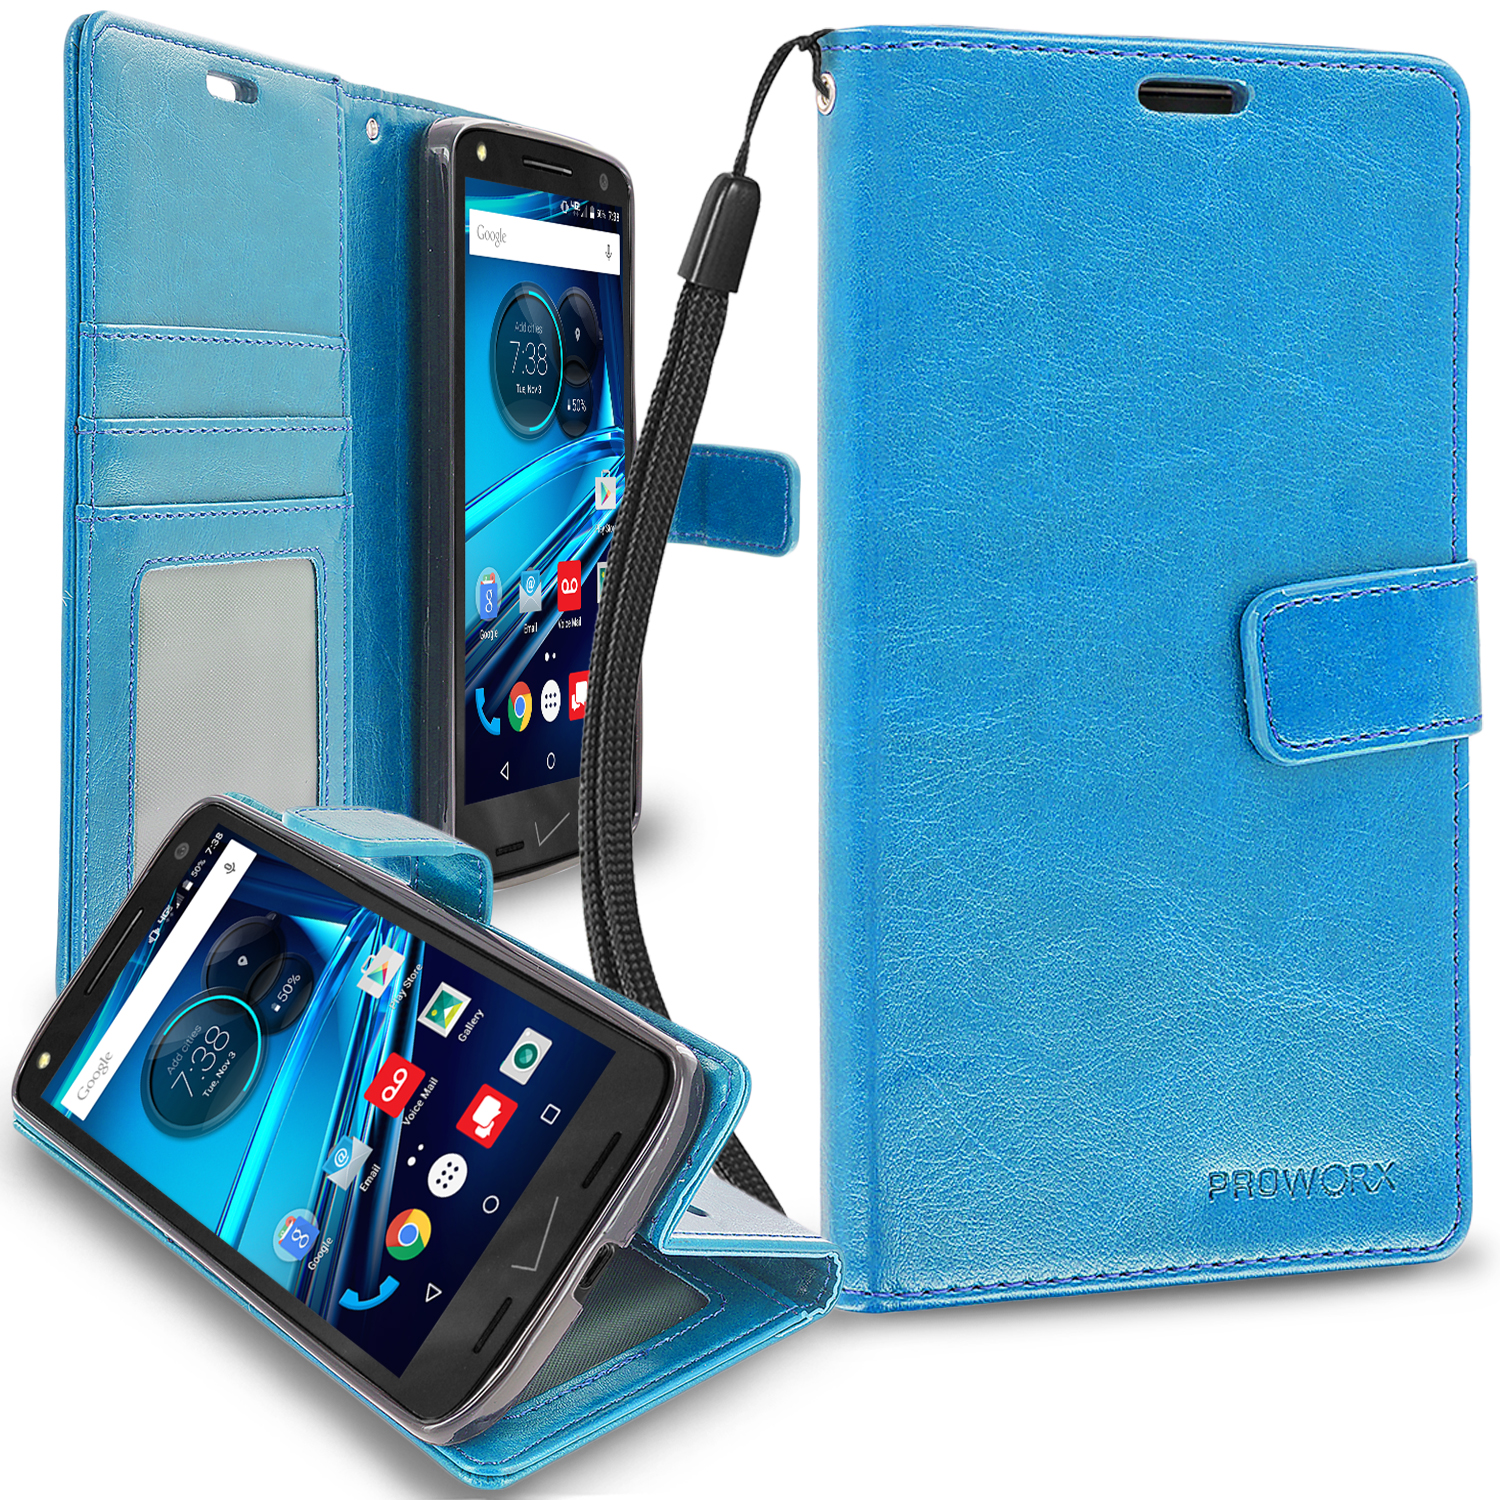 Motorola Droid Turbo 2 Baby Blue ProWorx Wallet Case Luxury PU Leather Case Cover With Card Slots & Stand